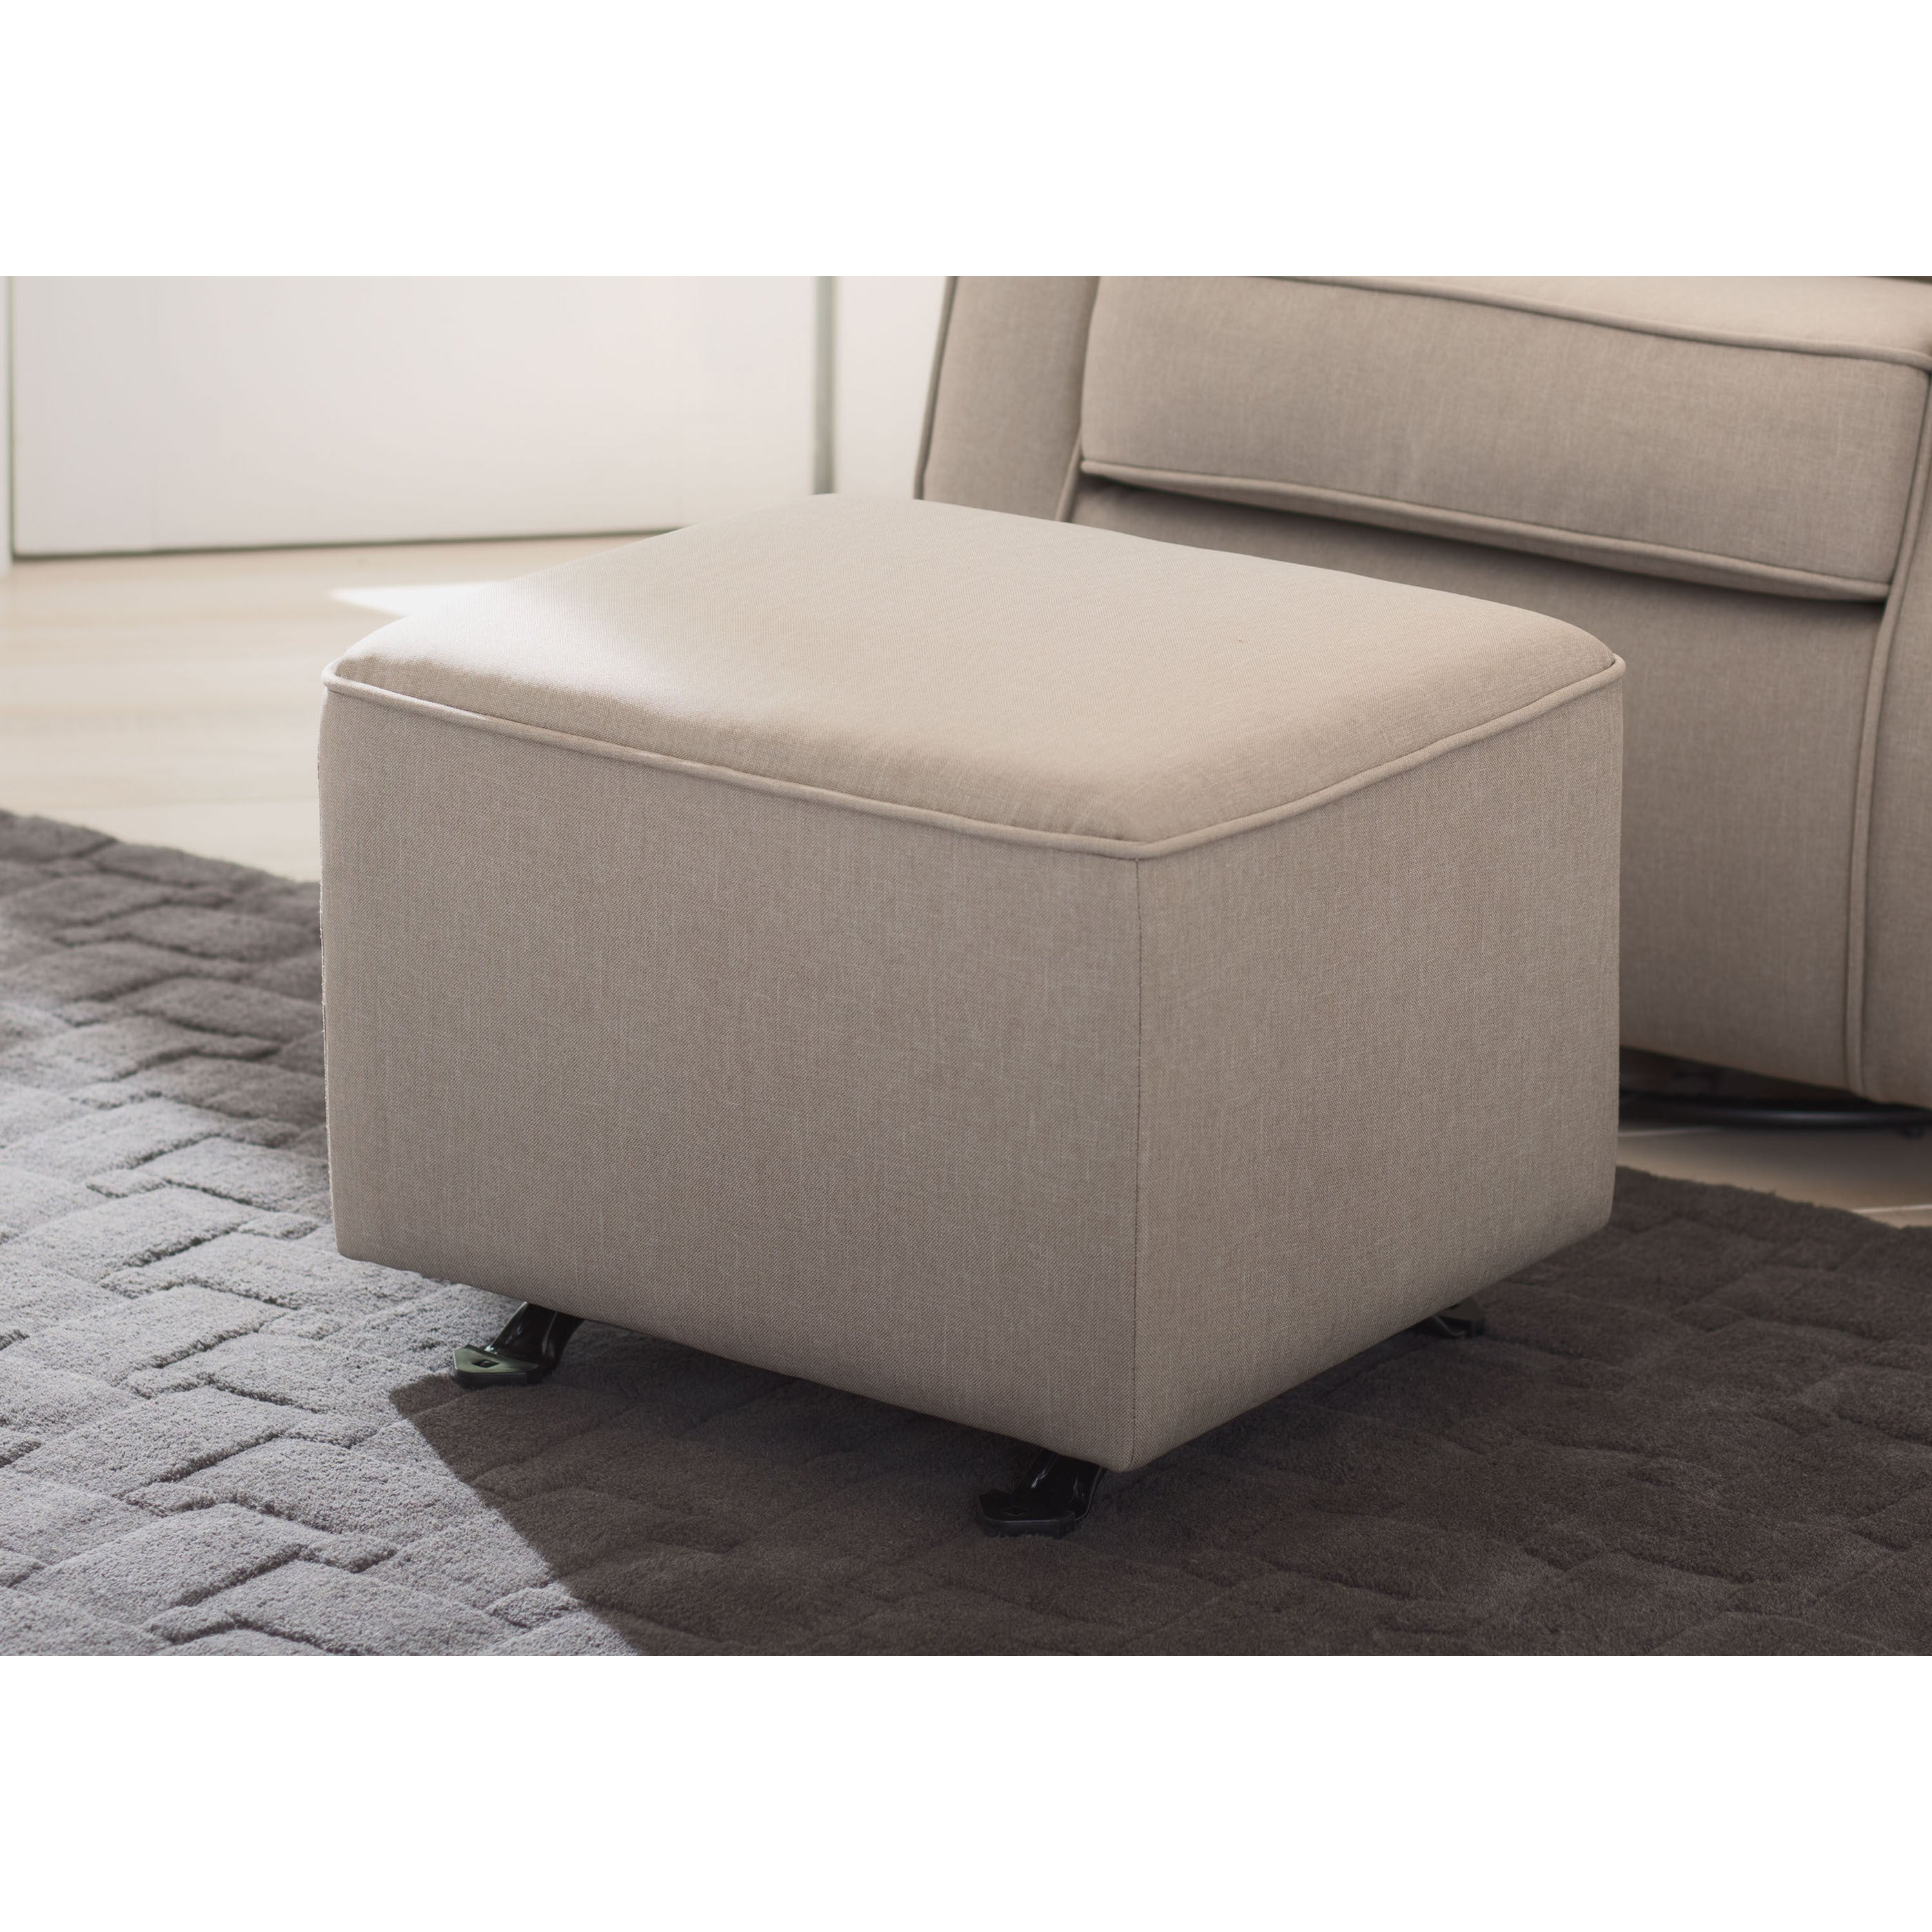 Taupe Delta Children Nursery Gliding Ottoman Free Shipping Today 14221058